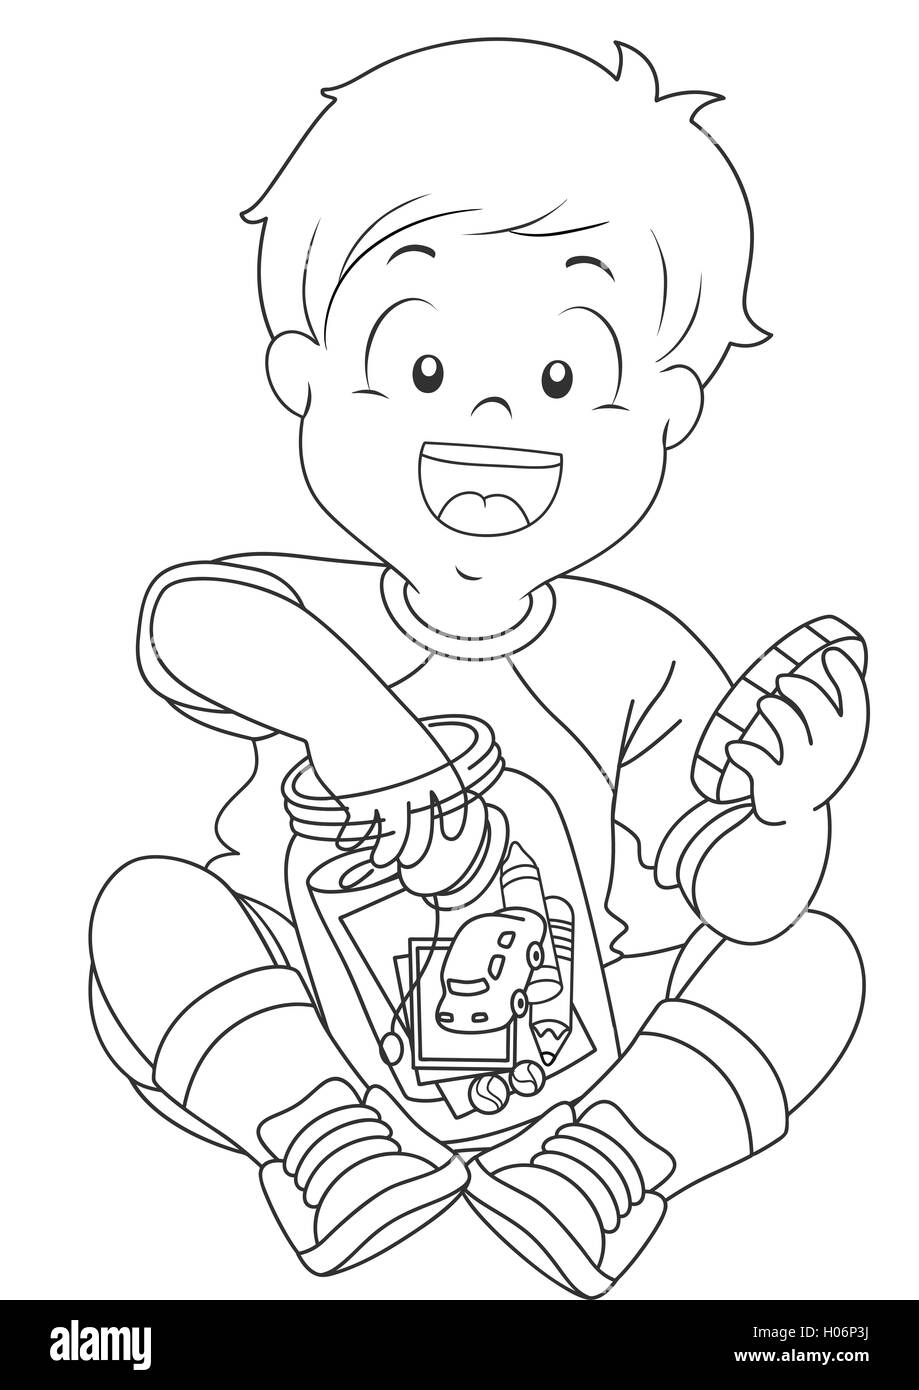 Black and White Illustration of a Boy Storing Trinkets in a Jar - Stock Image